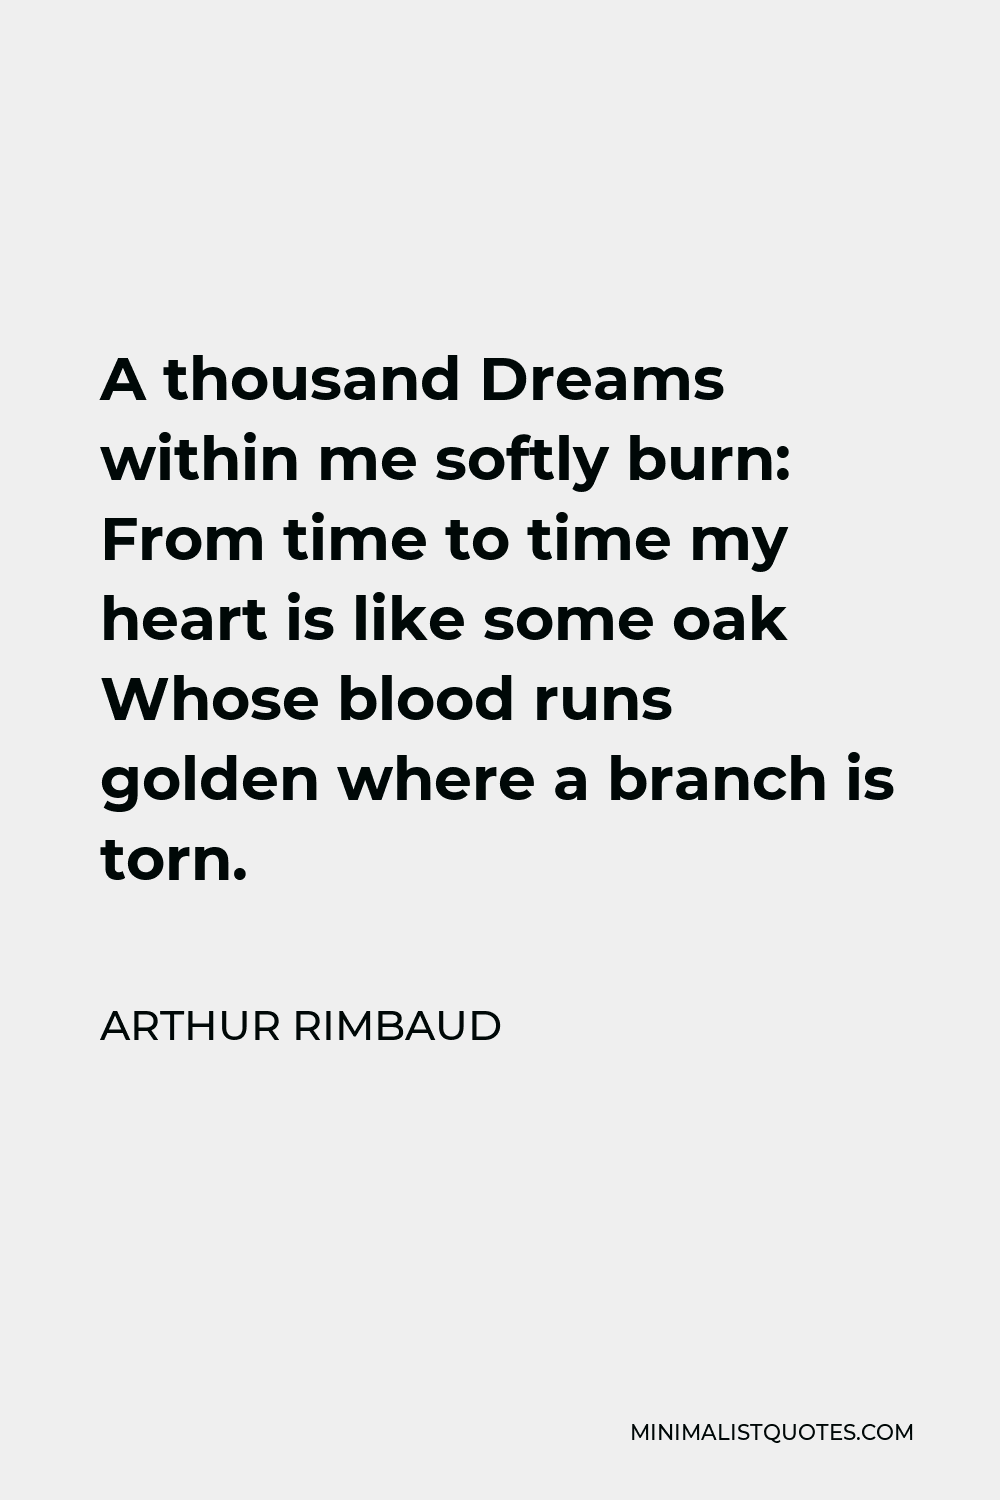 Arthur Rimbaud Quote - A thousand Dreams within me softly burn: From time to time my heart is like some oak Whose blood runs golden where a branch is torn.